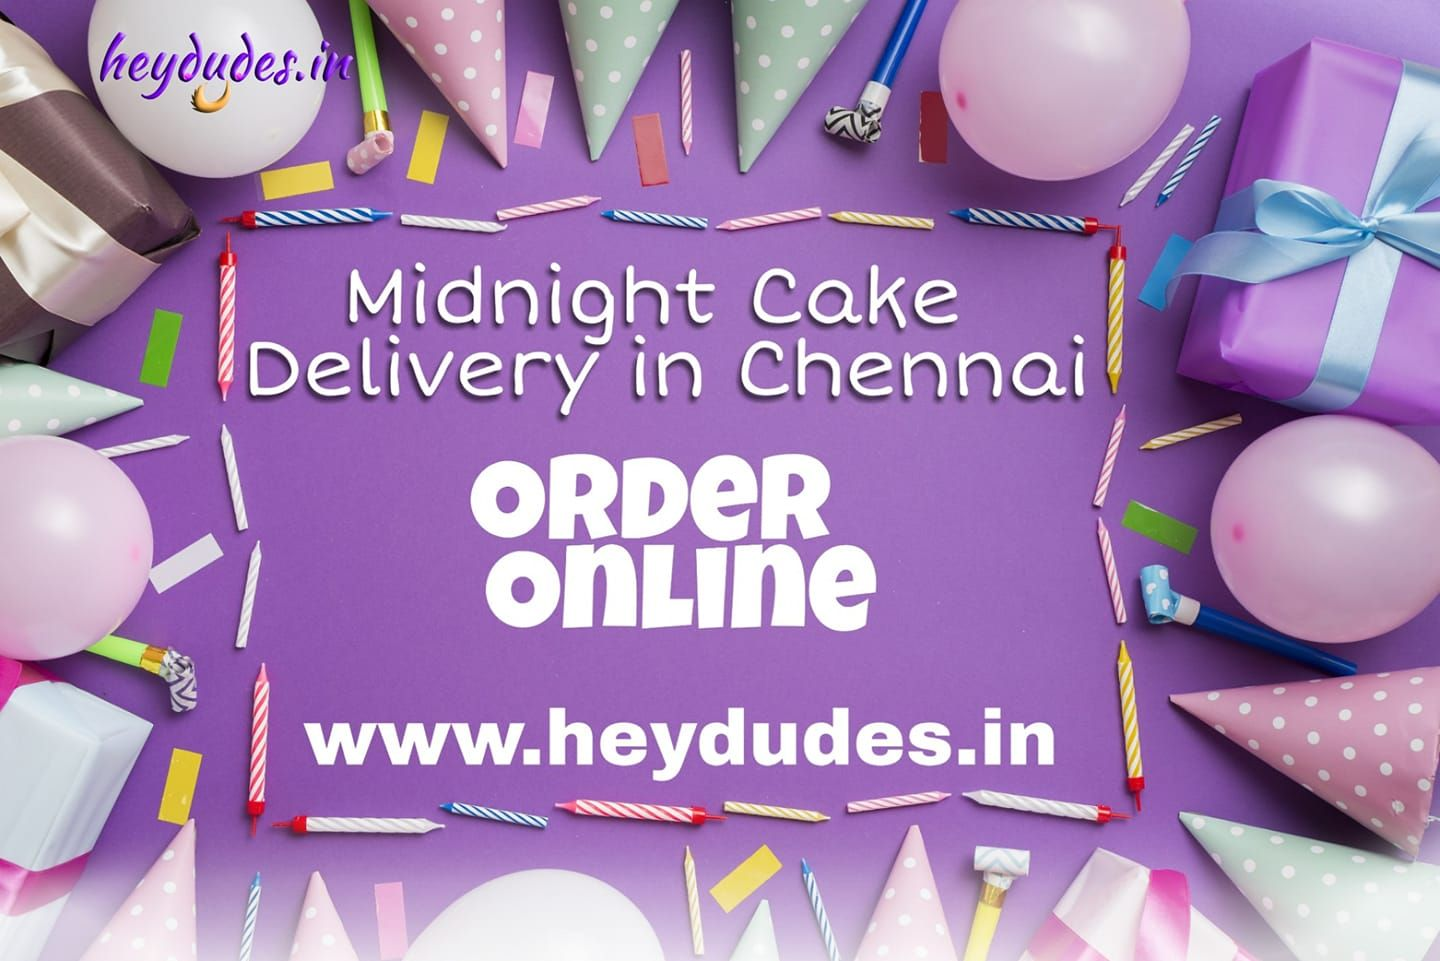 24hours cake delivery in chennai Order your cake online